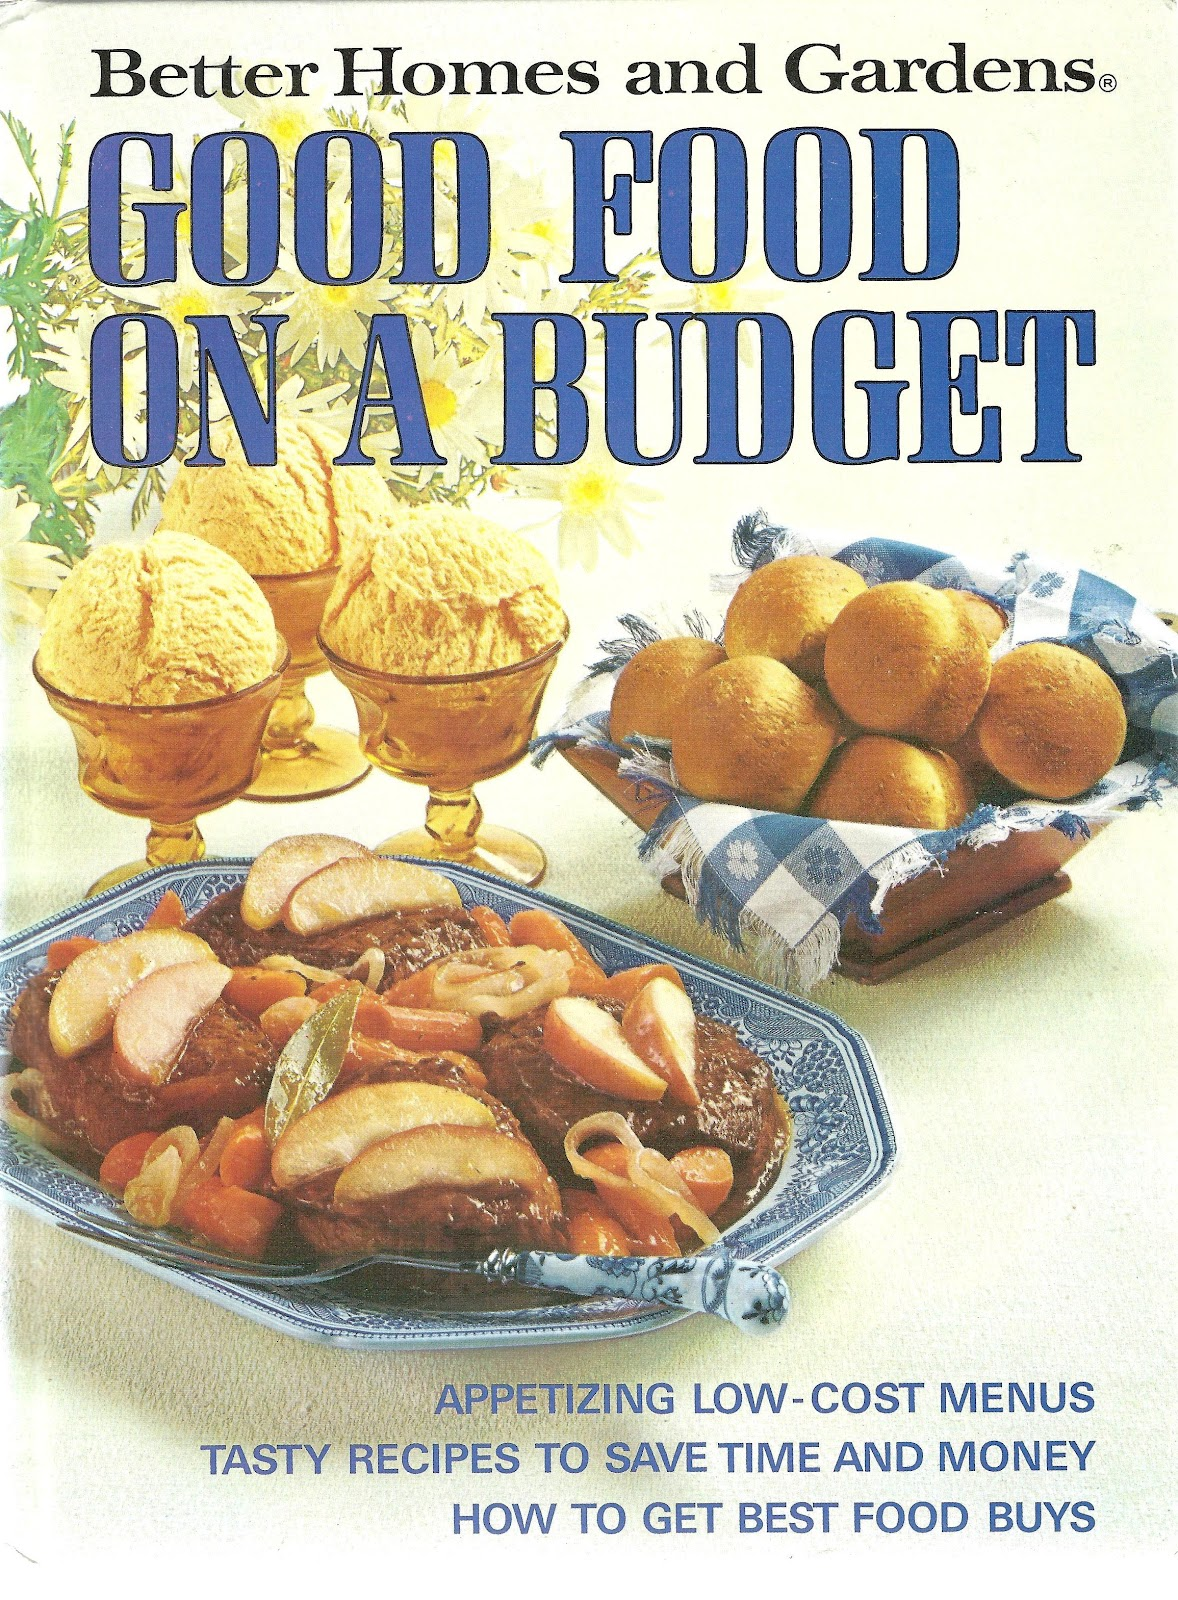 Bad And Ugly Of Retro Food Budget To Live And Live To Budget